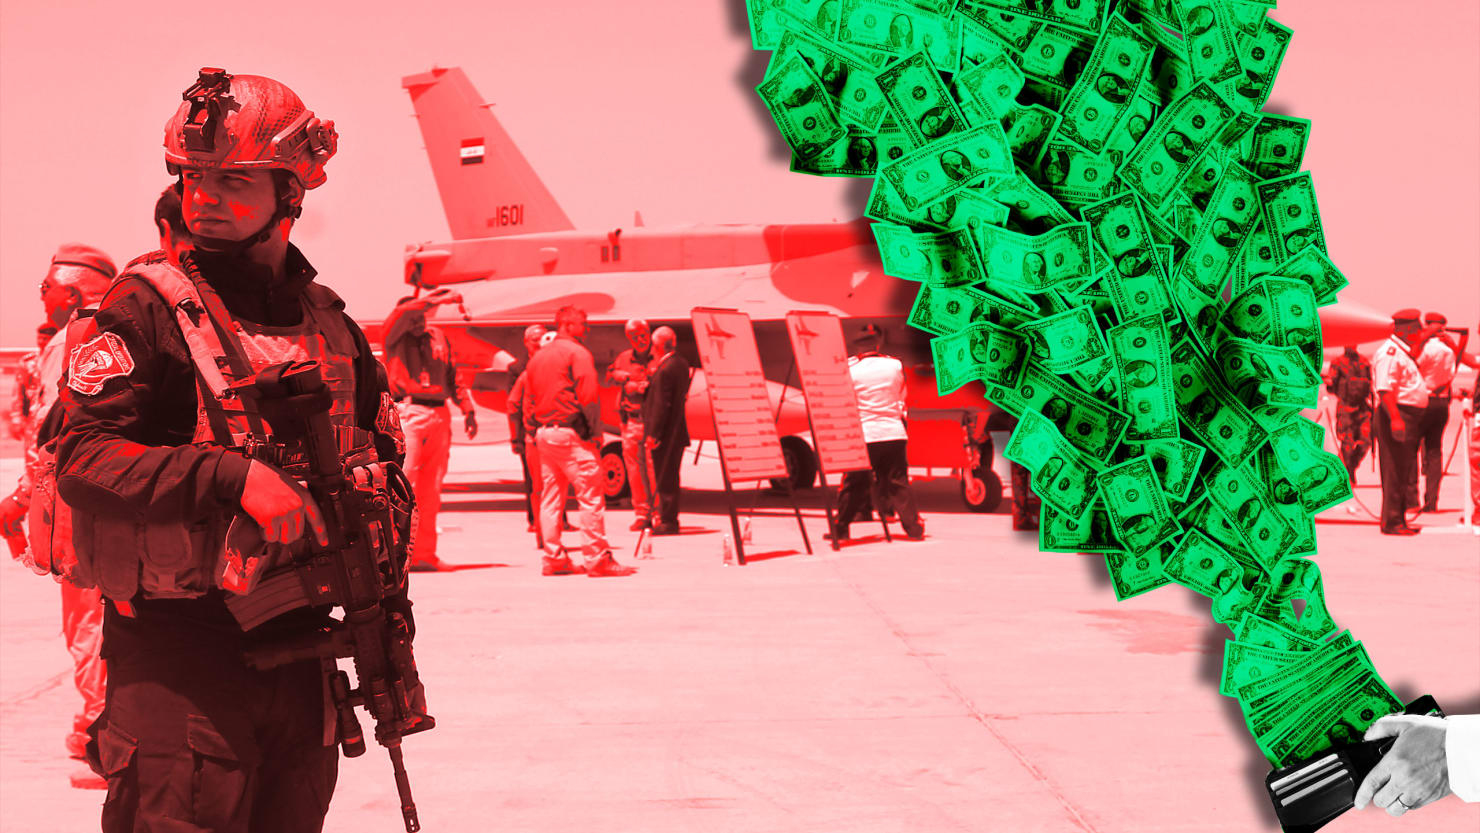 thedailybeast.com - Zack Kopplin - U.S. Paid $1B to Contractor Accused of Bigotry at Iraq Air Base